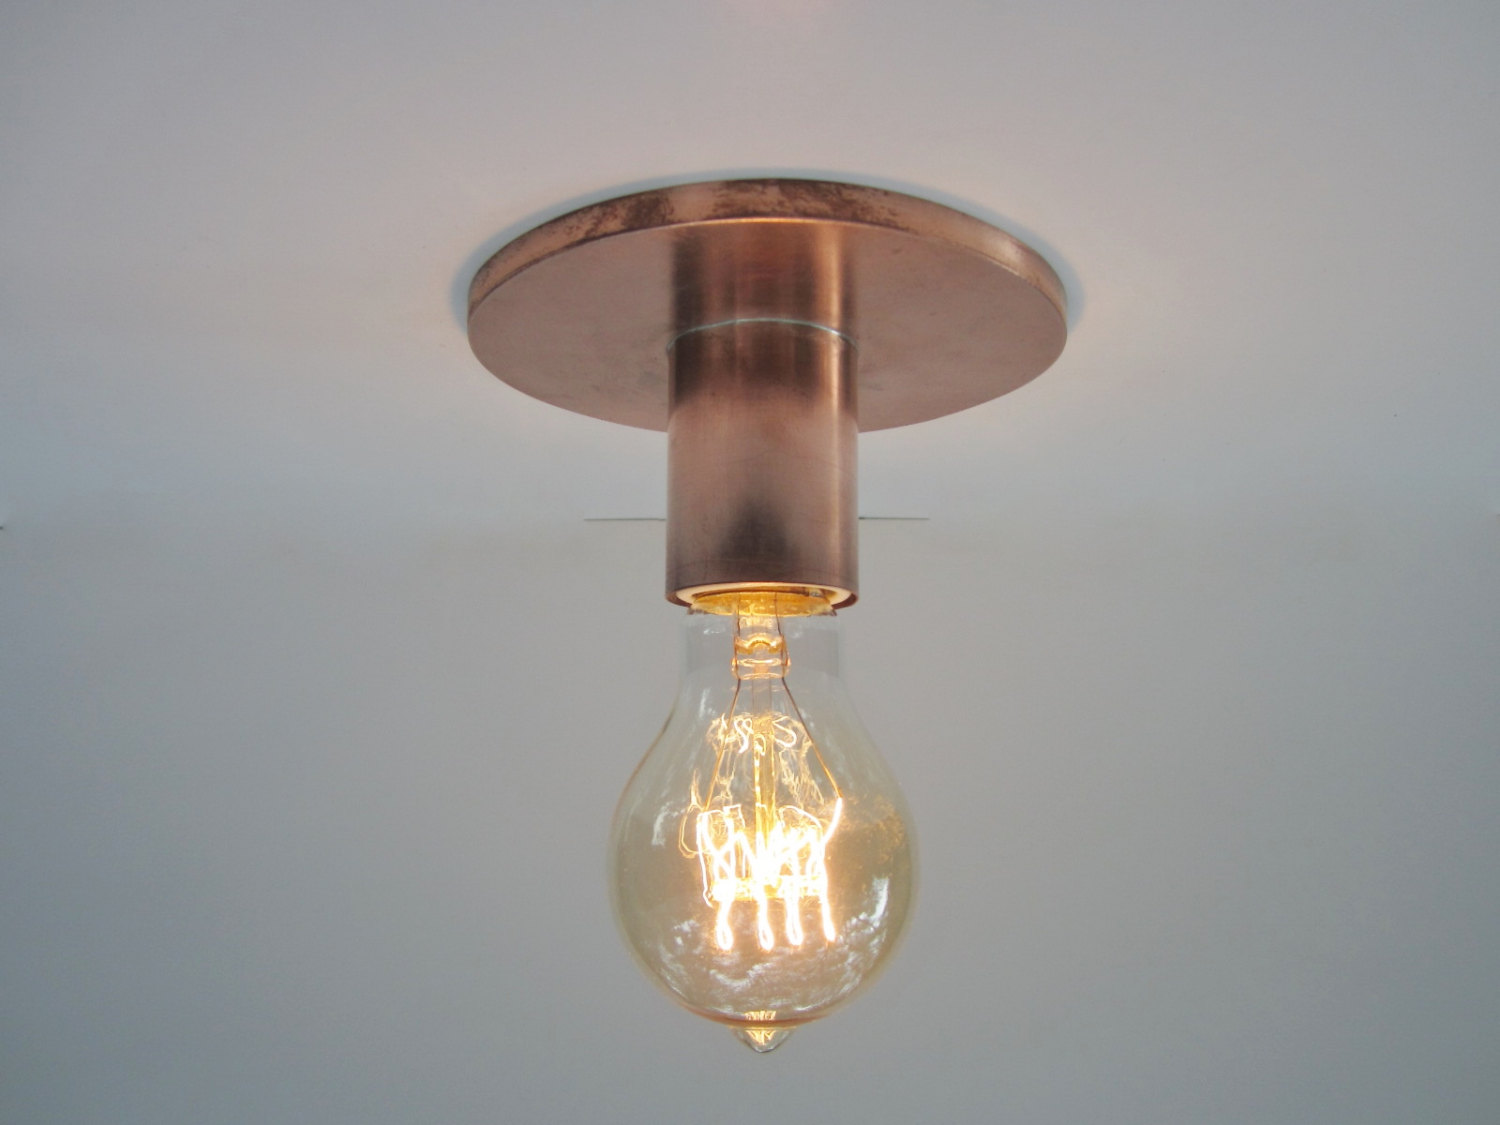 Light Bulb Shaped Ceiling Light 12 Ideal Classic Ceiling